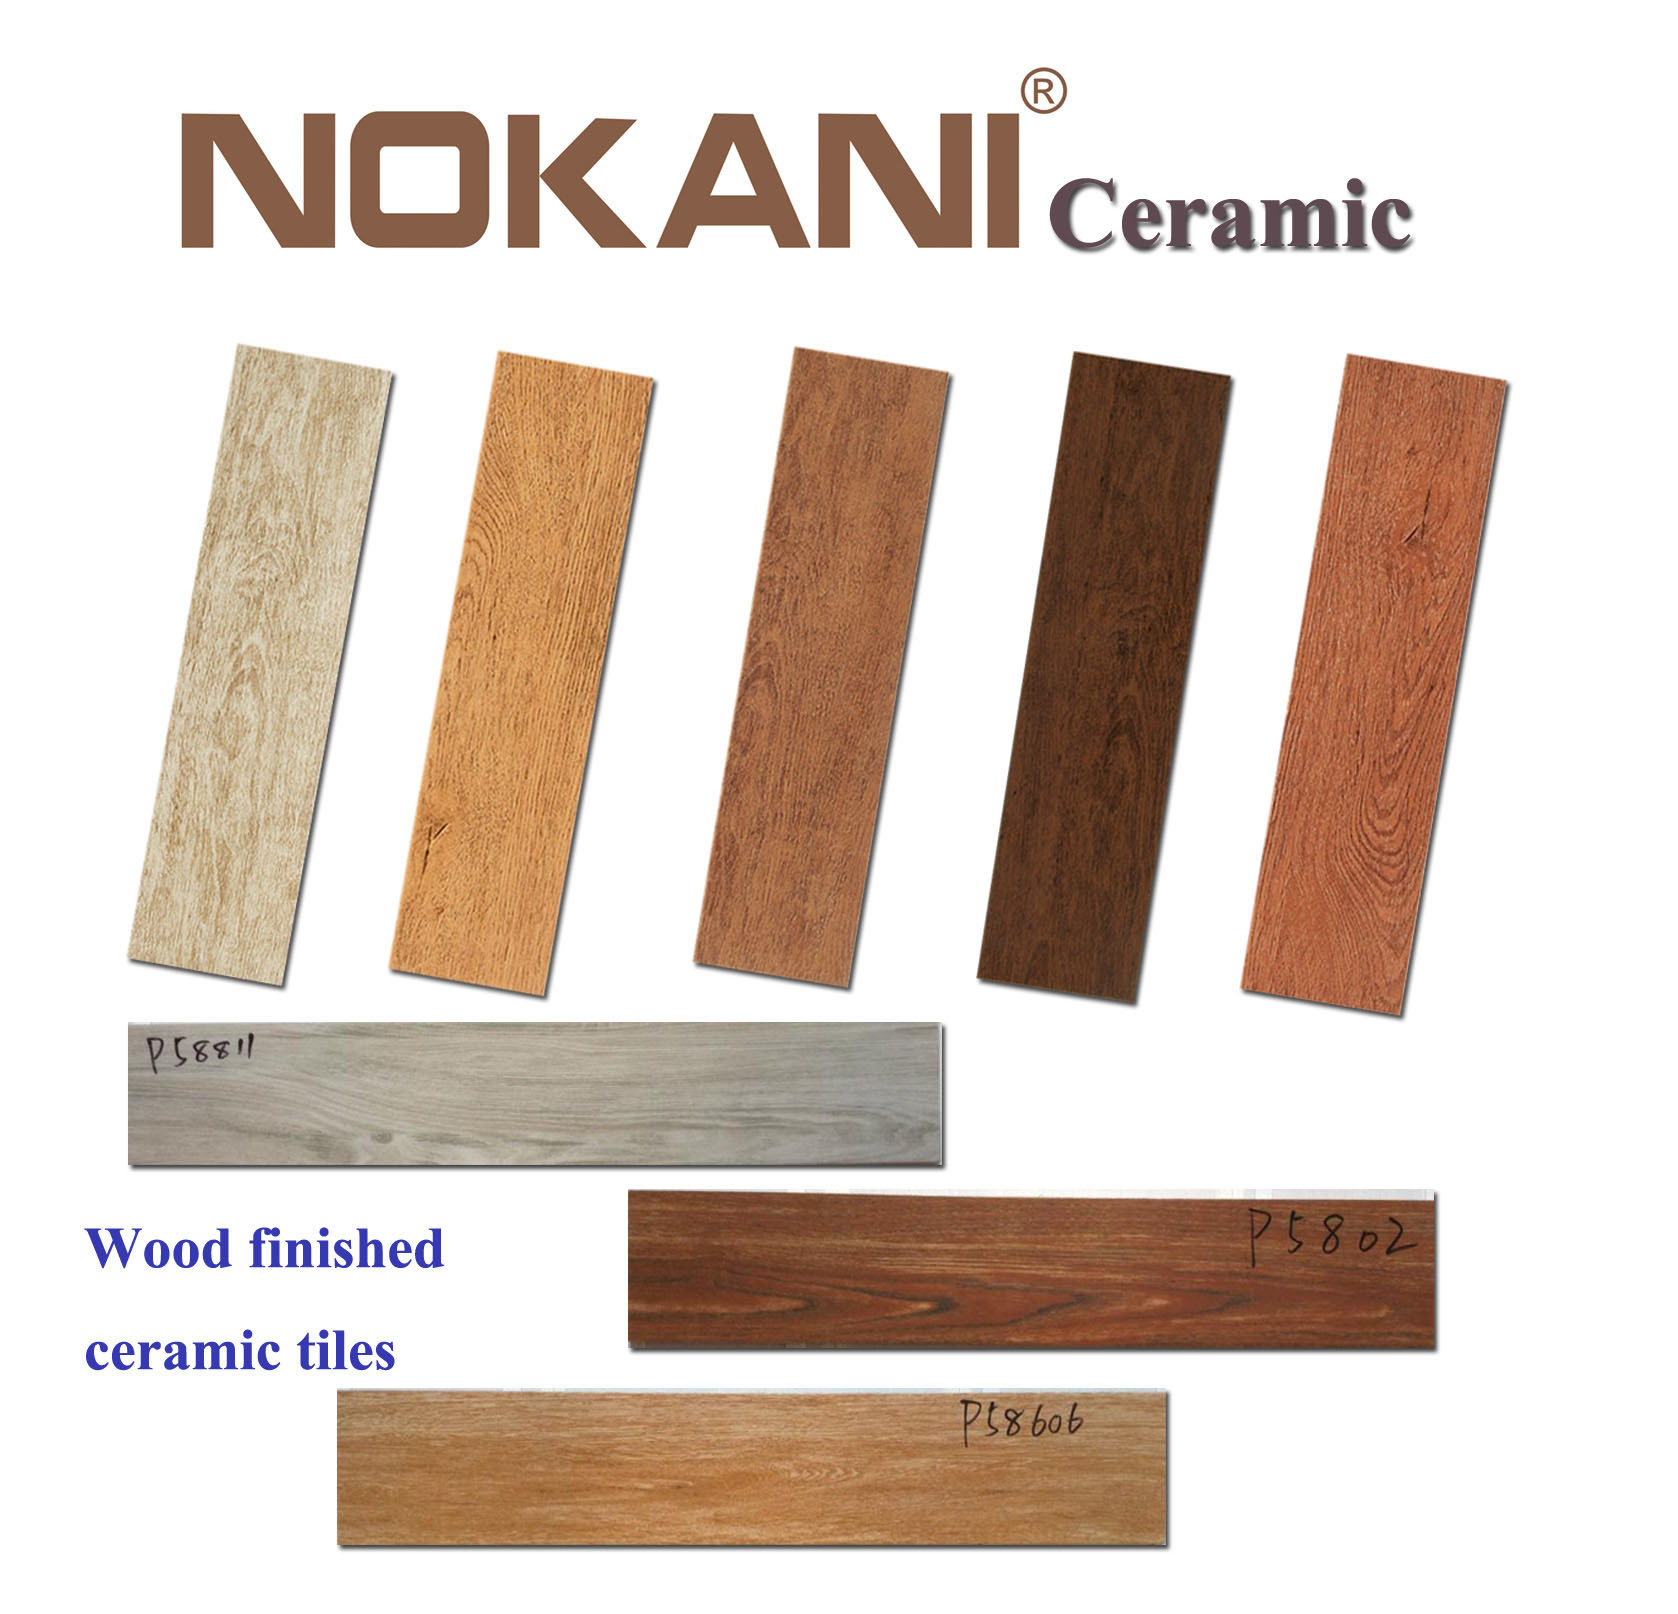 China wood finished ceramic tiles for flooring indoor ceramic tiles wood finished ceramic tiles for flooring indoor ceramic tiles dailygadgetfo Images